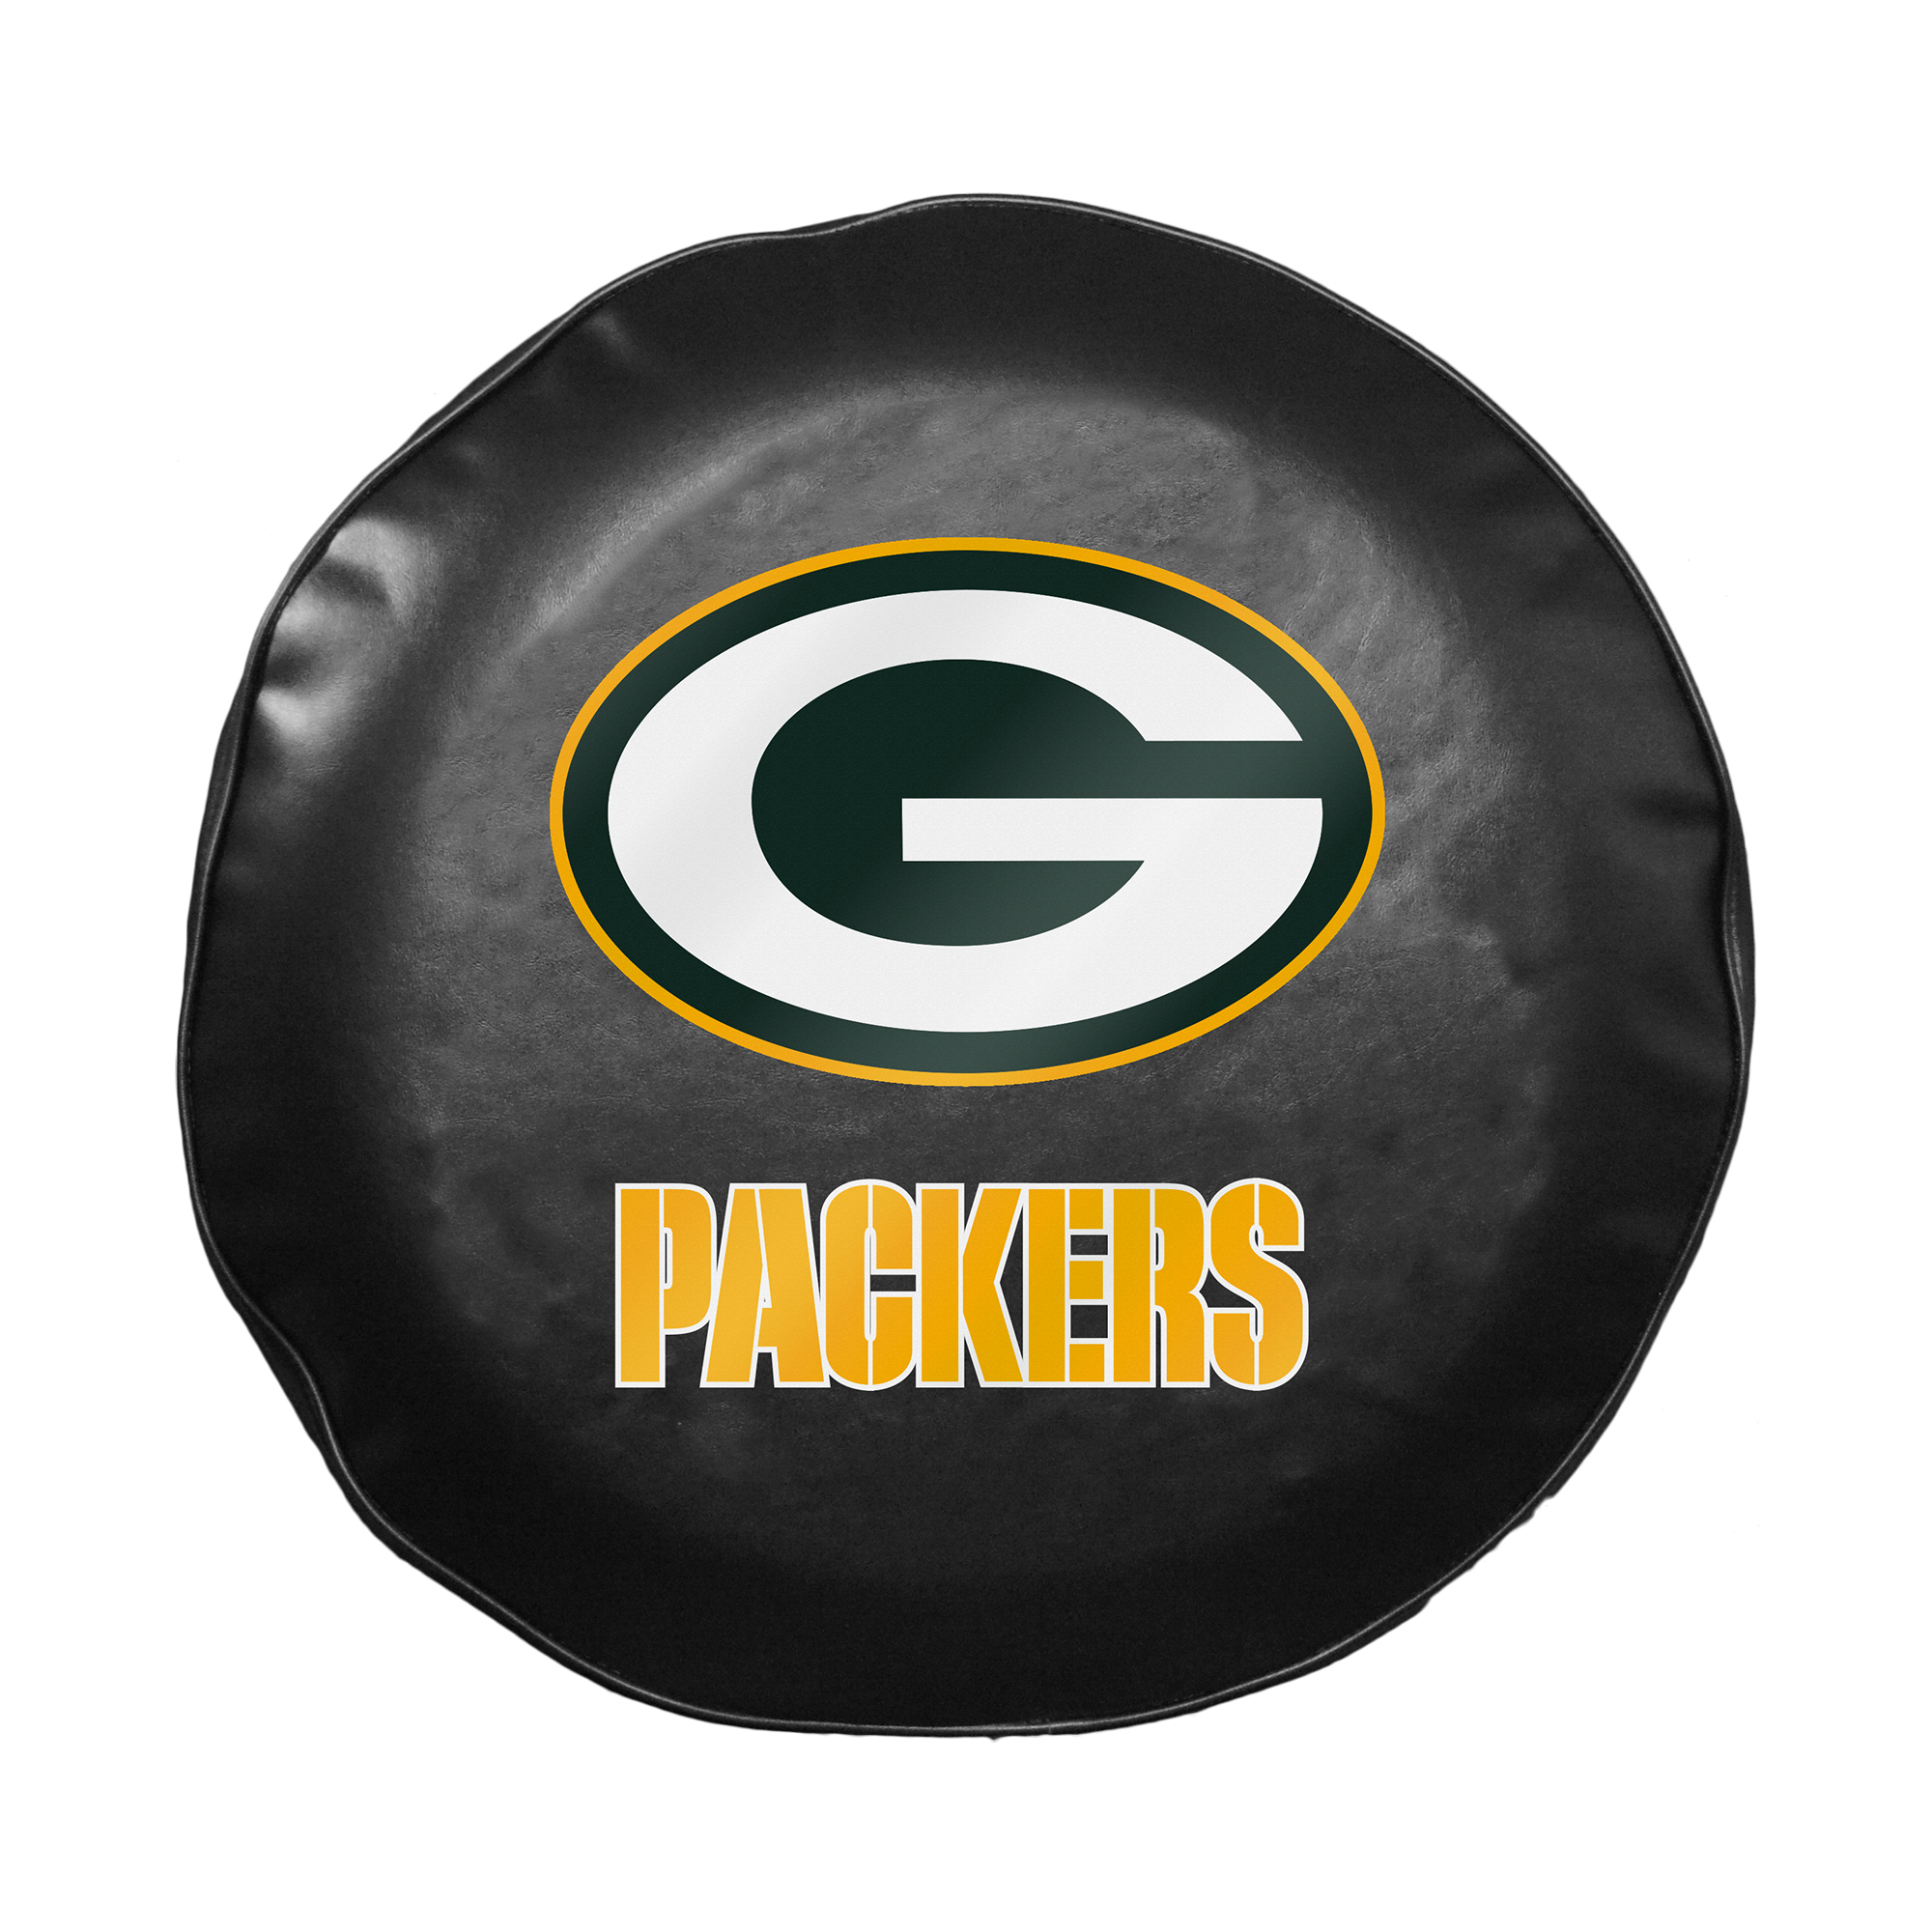 PACKERS Lg Tire Cover